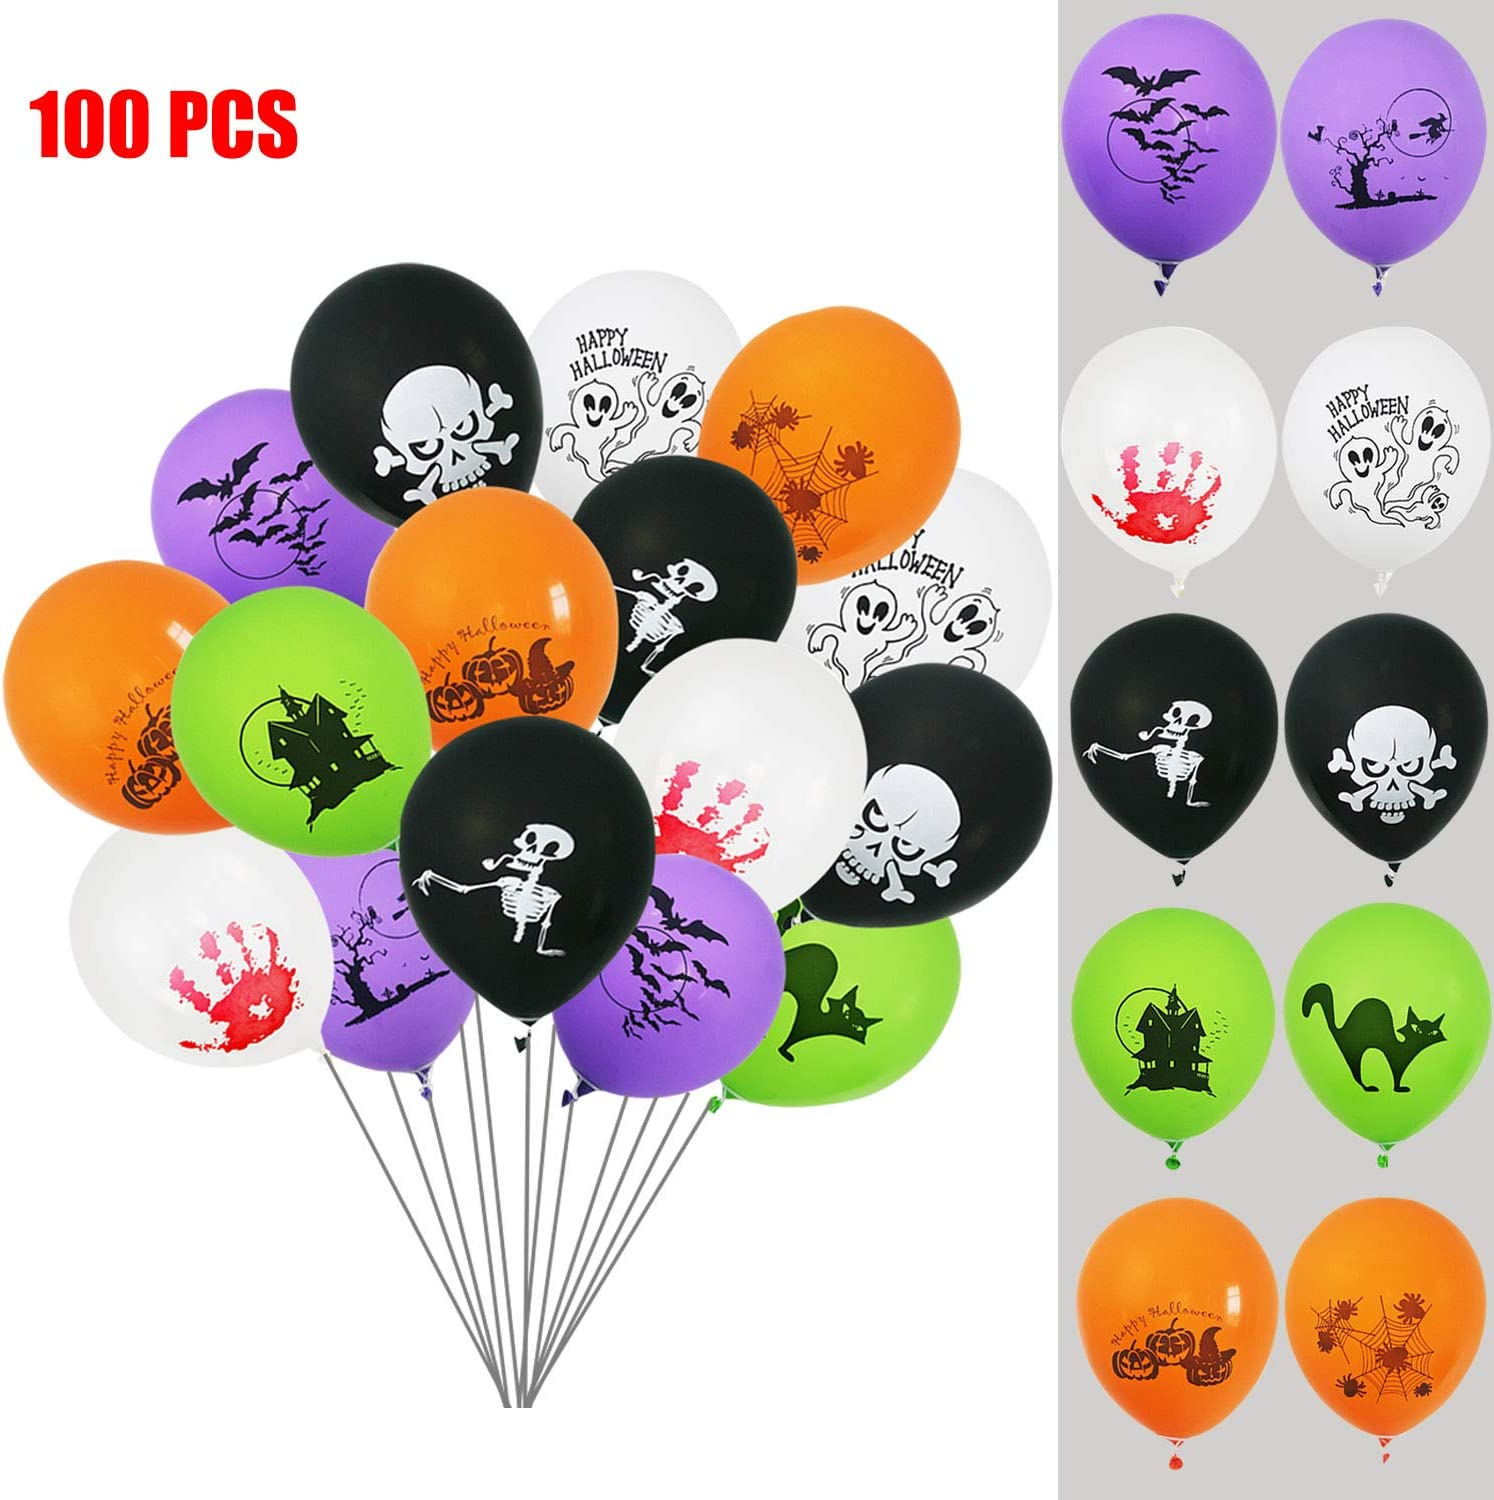 15 PCS Halloween Bloody Hand Print Balloons  Pack Party Decoration Latex Balons